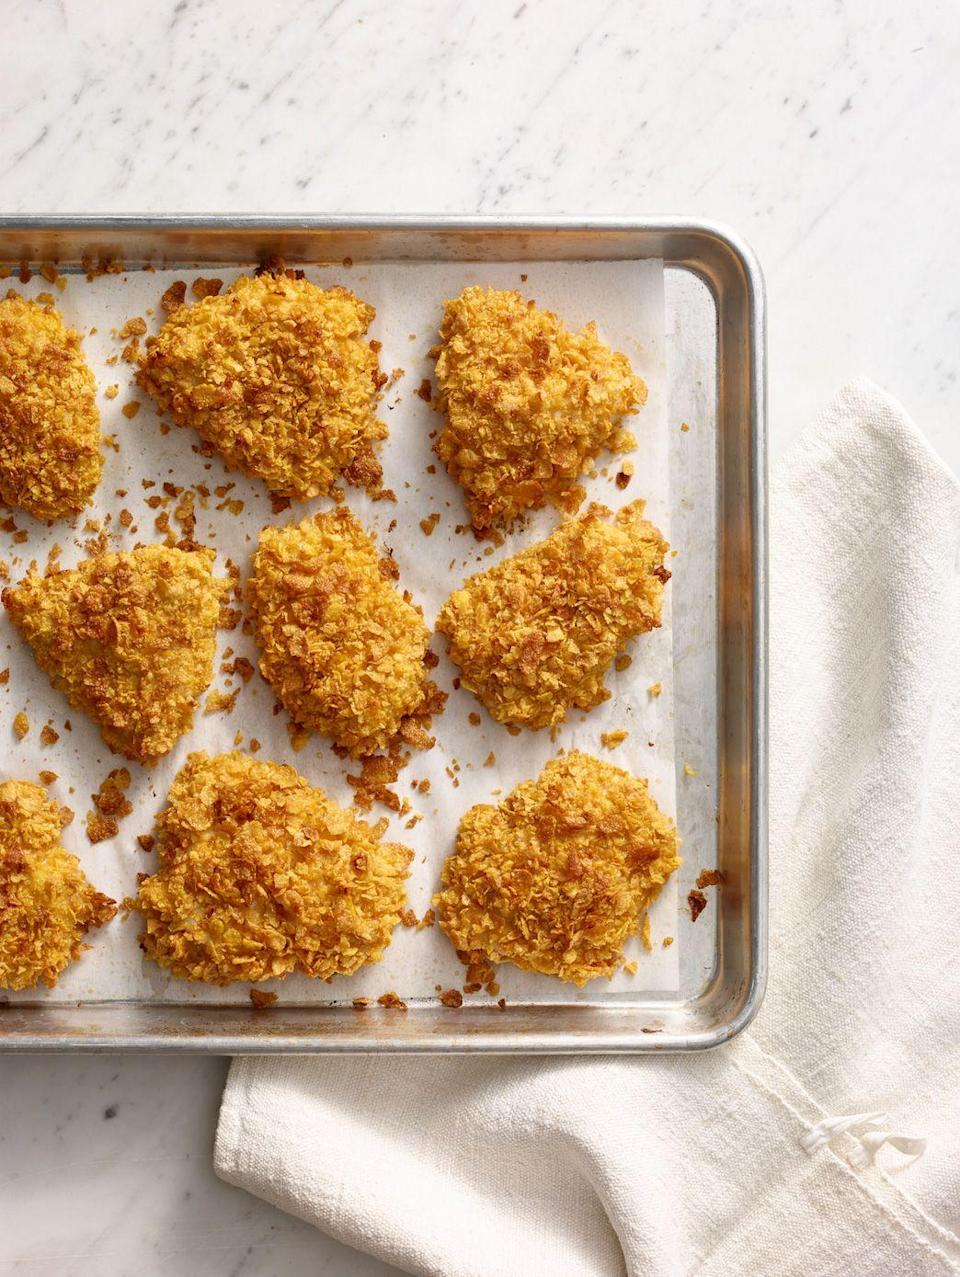 "<p>Try this recipe when you want fried chicken, but not the food coma that comes with it. </p><p><em><a href=""https://www.goodhousekeeping.com/food-recipes/a14849/crispy-baked-chicken-recipe-wdy0315/"" rel=""nofollow noopener"" target=""_blank"" data-ylk=""slk:Get the recipe for Crispy Baked Chicken »"" class=""link rapid-noclick-resp"">Get the recipe for Crispy Baked Chicken »</a></em></p>"